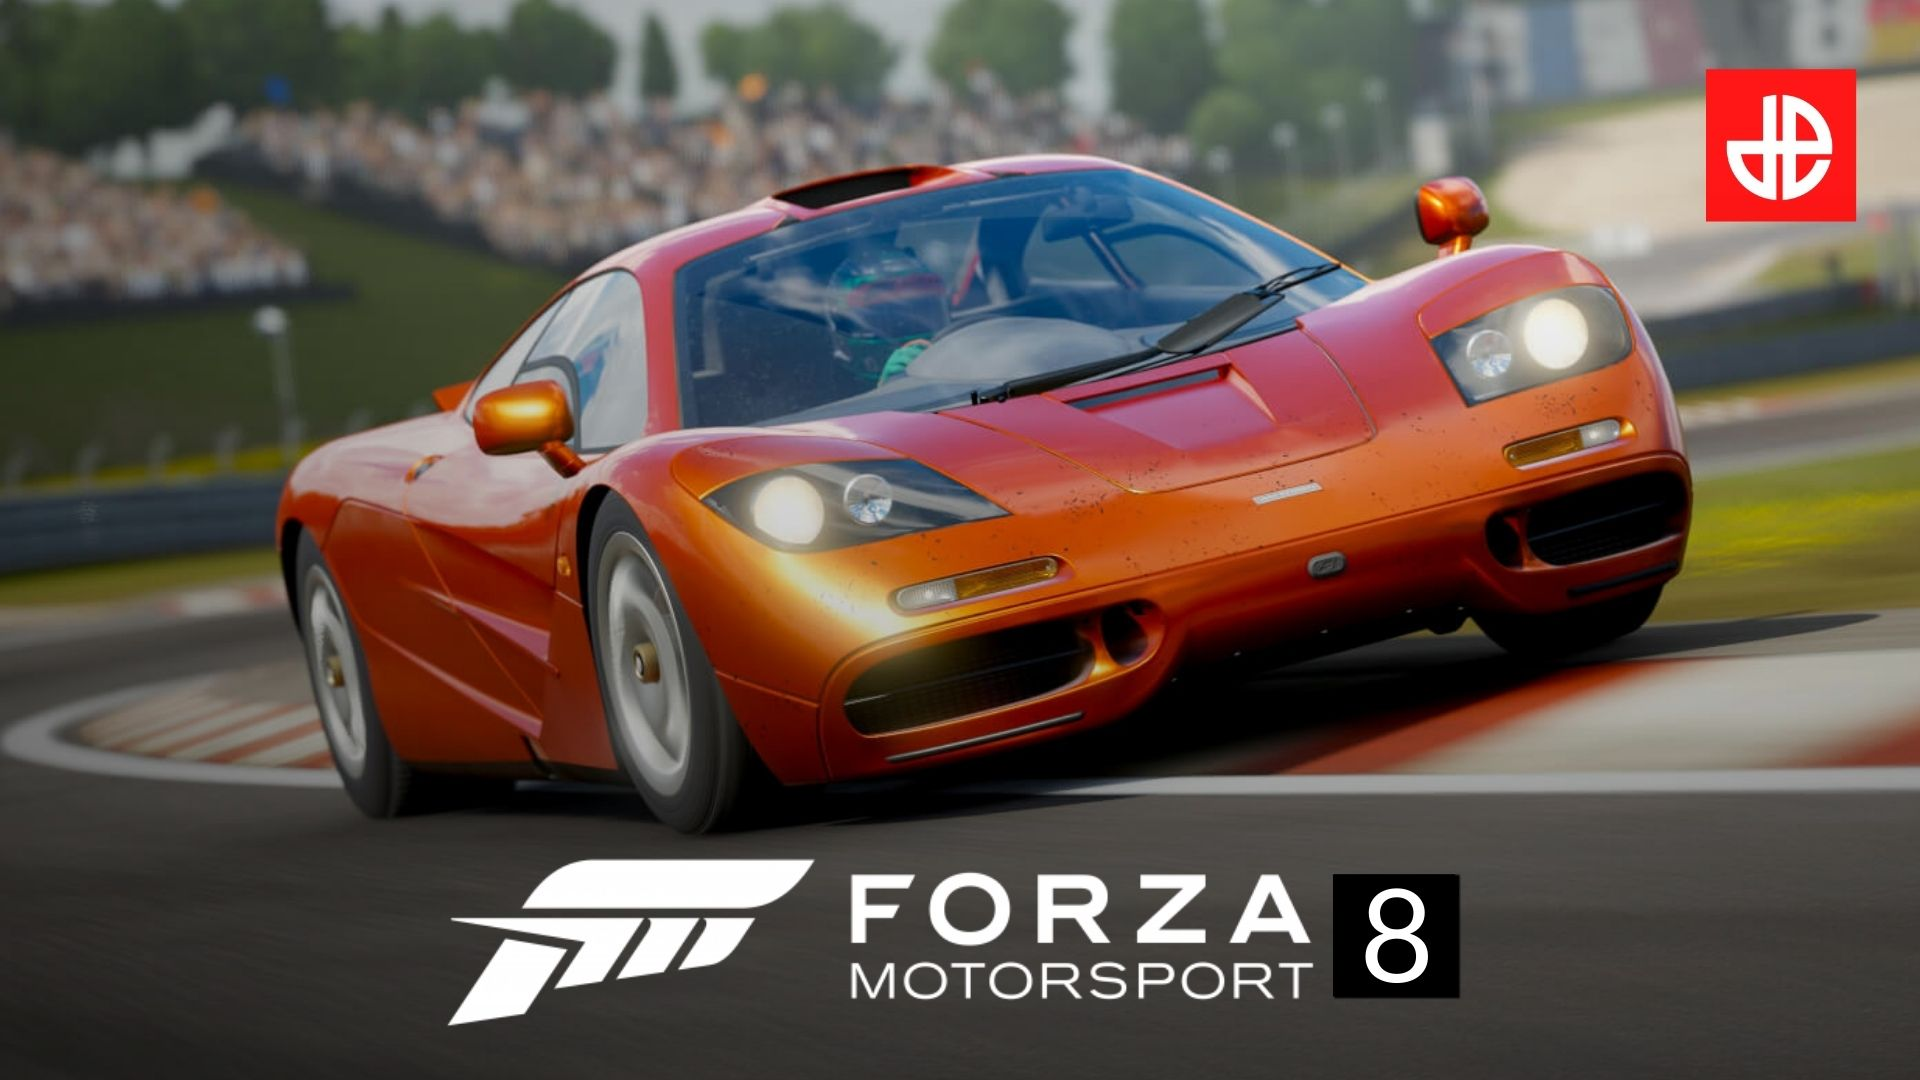 Forza Motorsport 8 car on racetrack